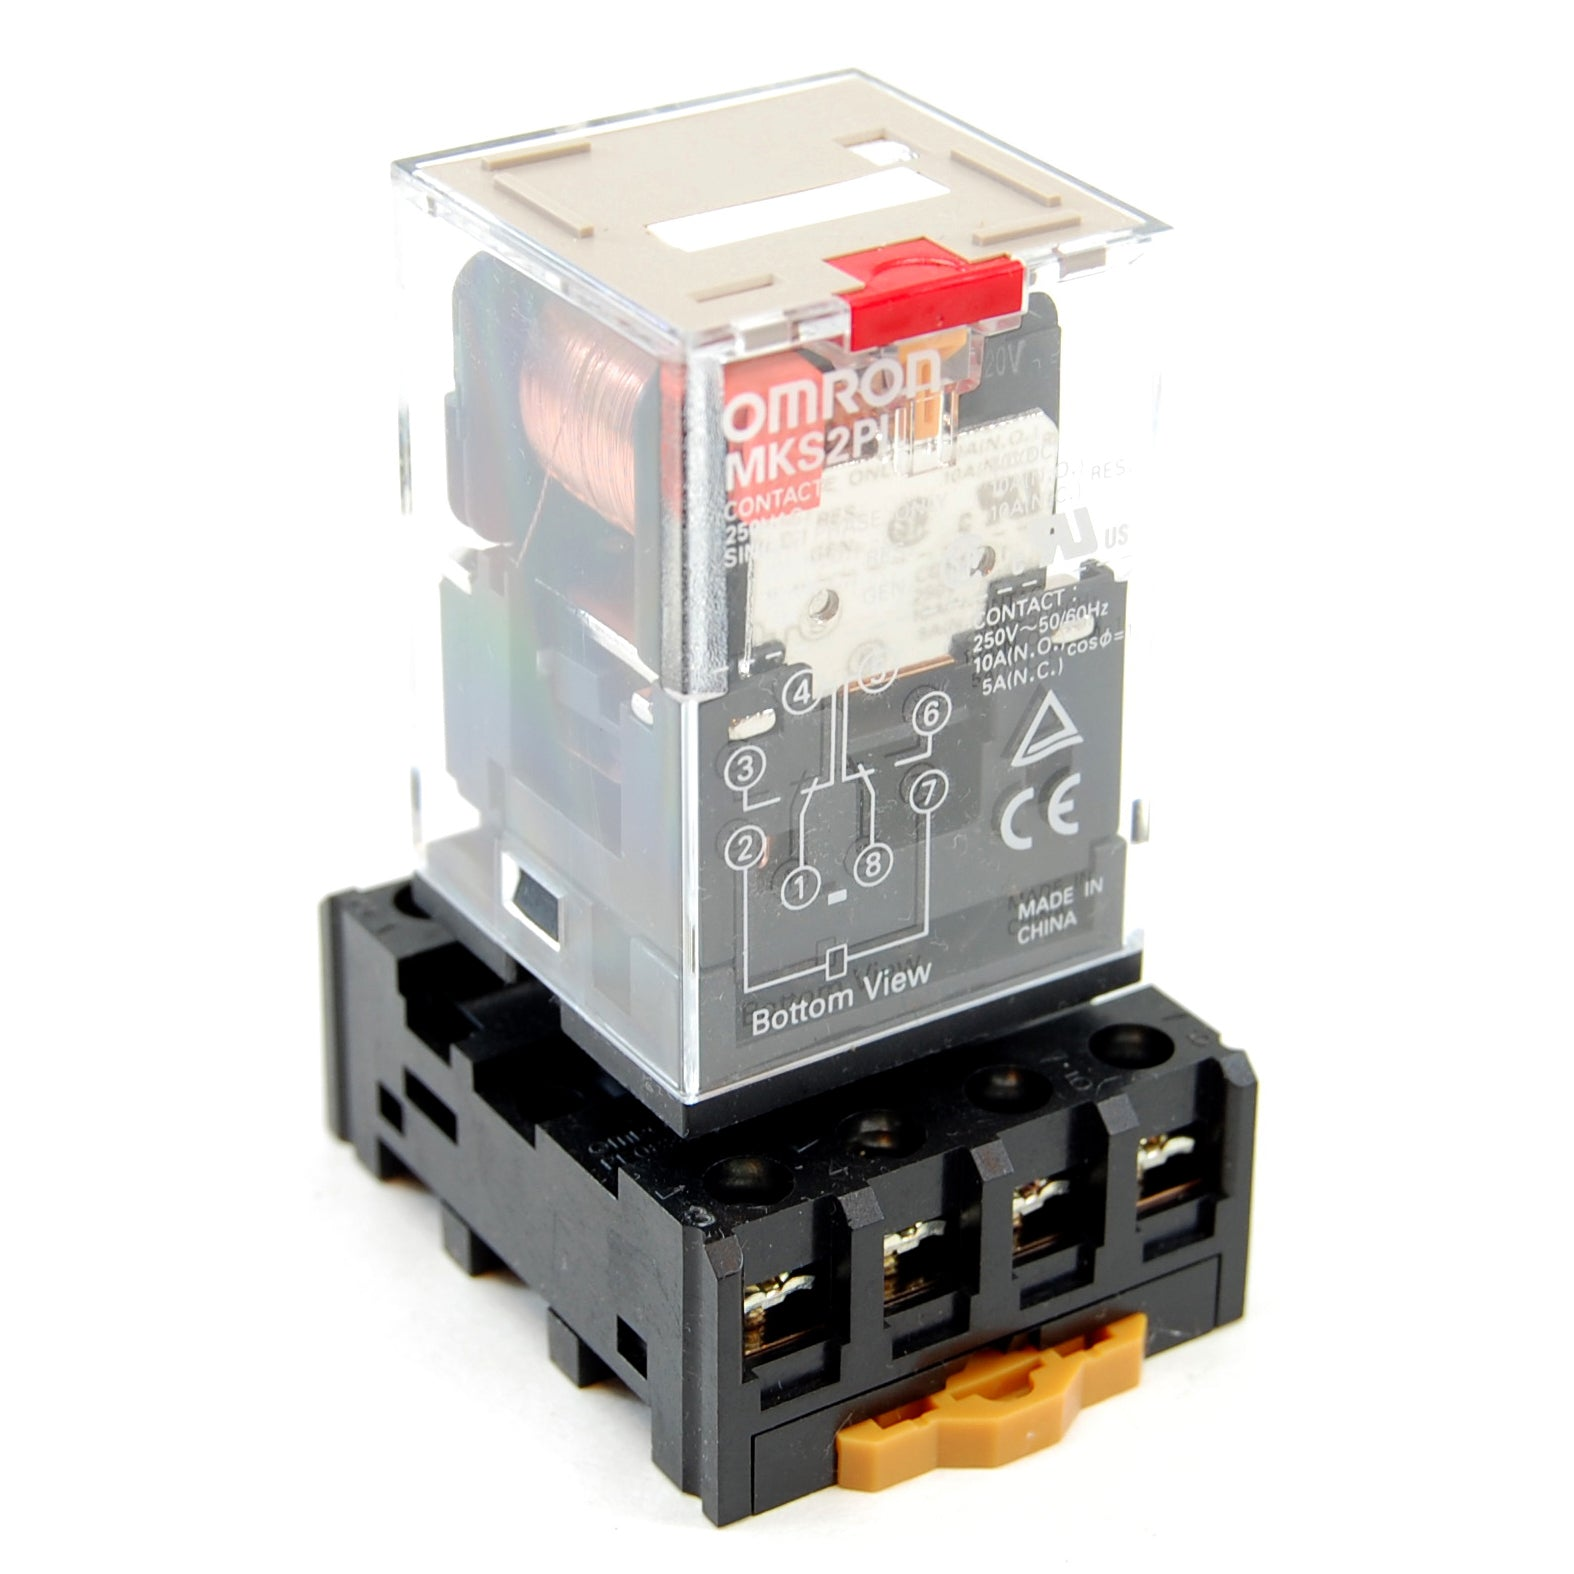 Wiring A Pin Relay on 8 pin relay circuits, 8 pin round base, 8 pin relay base, 8 pin time delay relays, 8 pin cube relay diagram, 8 pin relay socket diagram, 8 pin relay plug in, 8 pin relay connections,